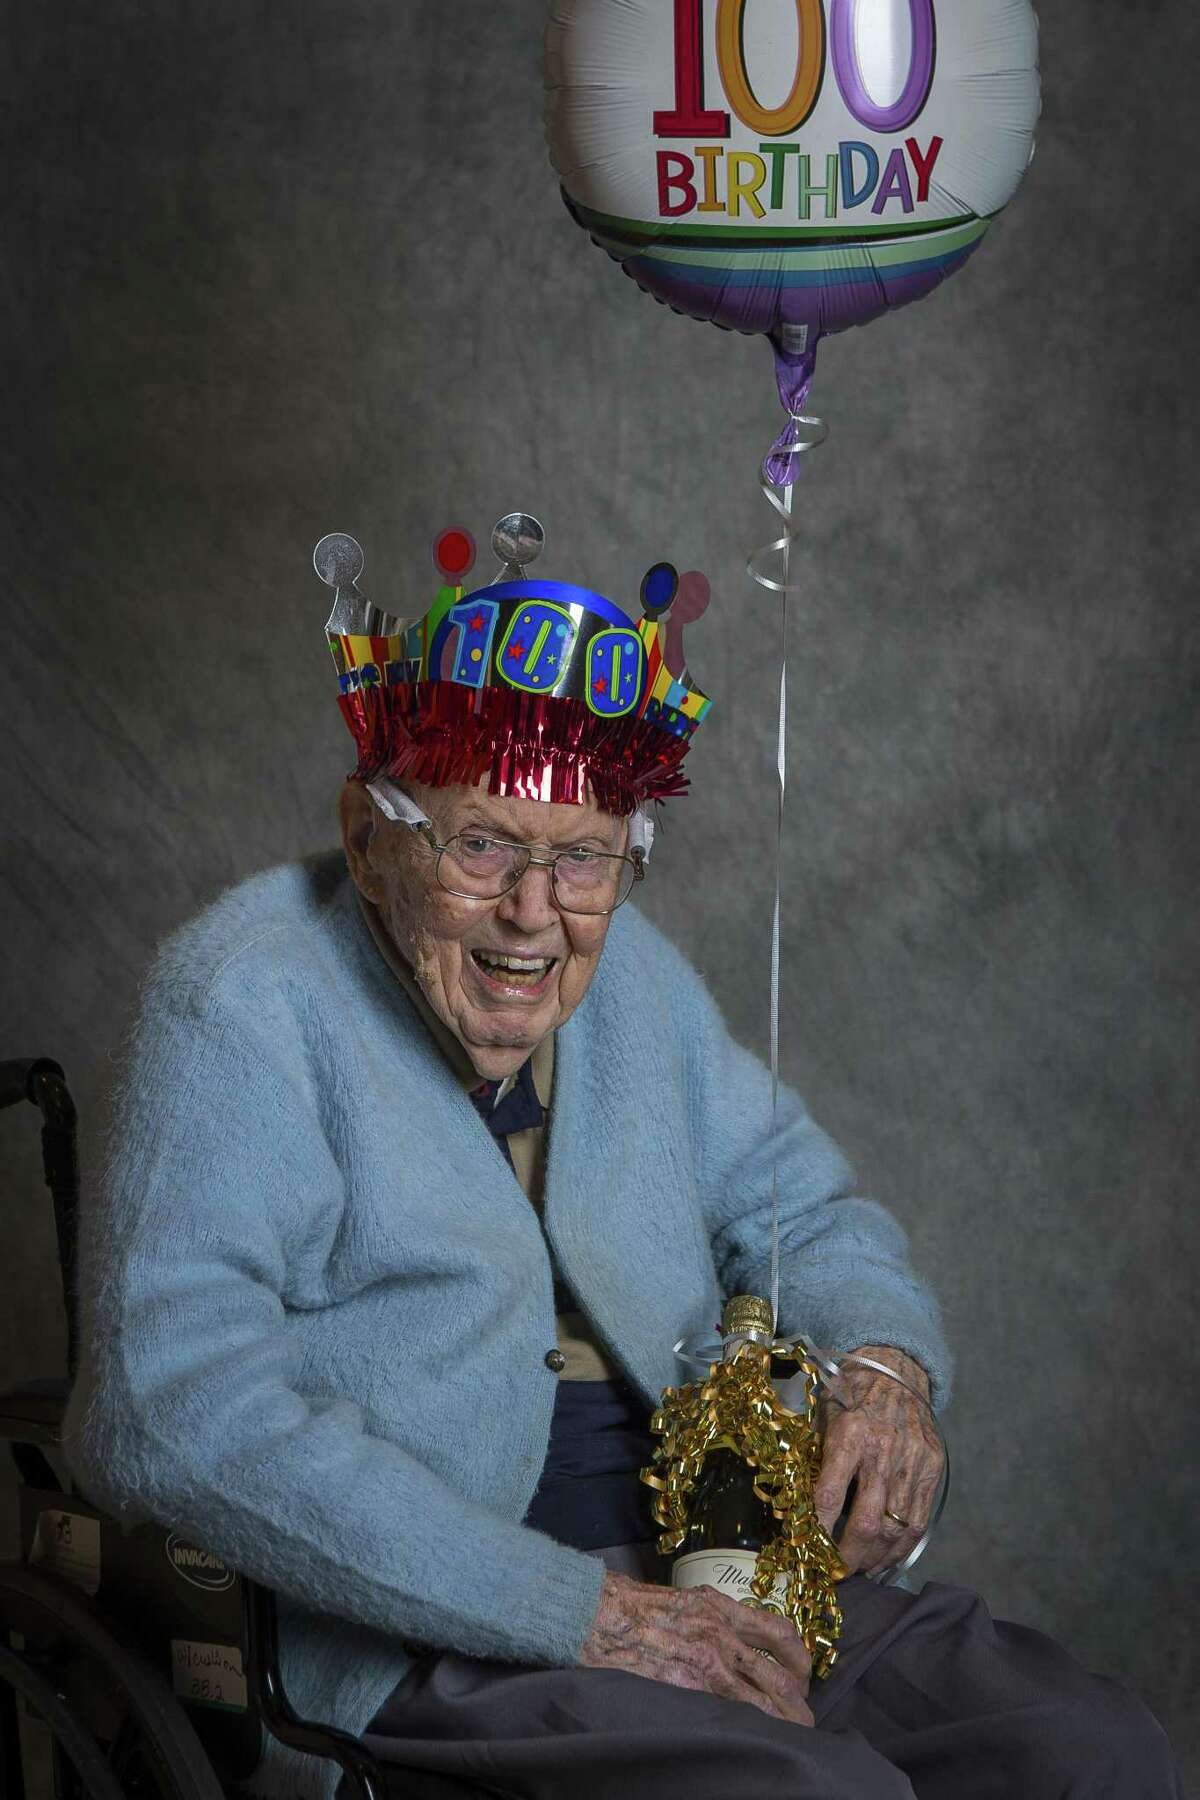 Charles Omar Logan, who will turns 100 on April 10 of this year, photographed before a celebration for the ten centenarians (and one who turns 100 later this year) living at Clarewood House Senior Community, Monday, March 26, 2018, in Houston. Logan and his wife will celebrate their 75th wedding anniversary this year. ( Mark Mulligan / Houston Chronicle )